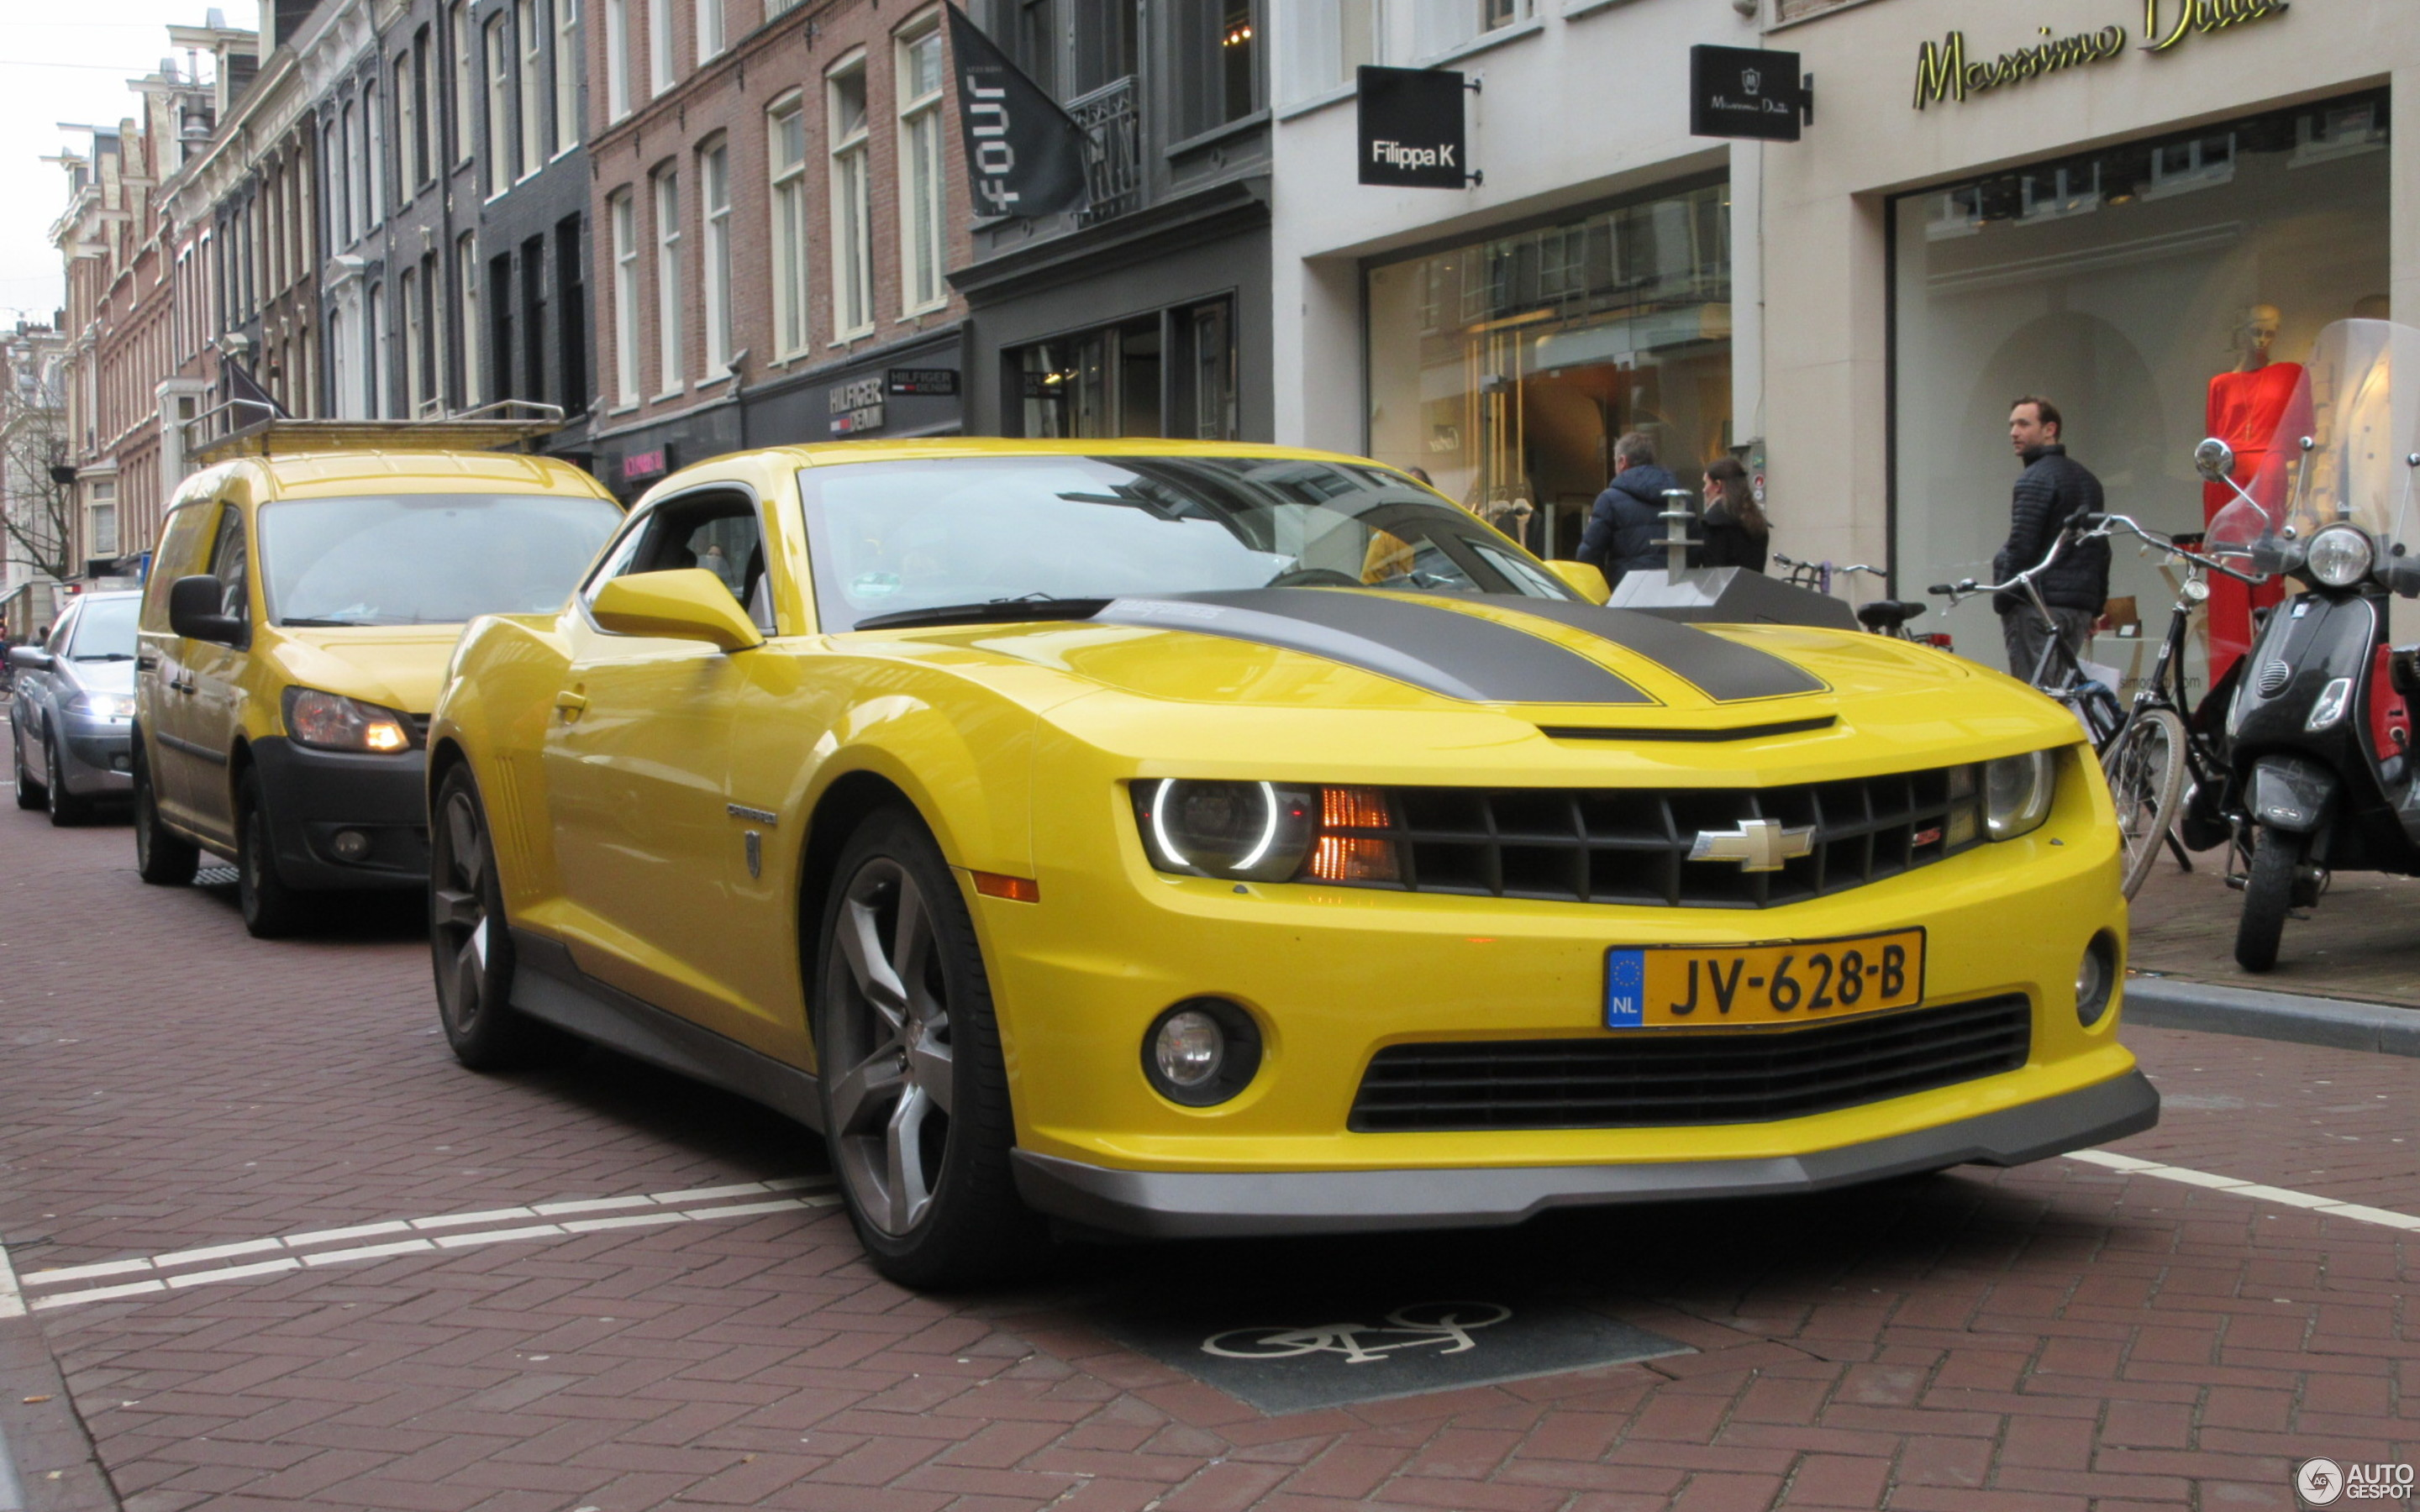 Chevrolet Camaro SS Transformers Edition - 13 March 2017 - Autogespot